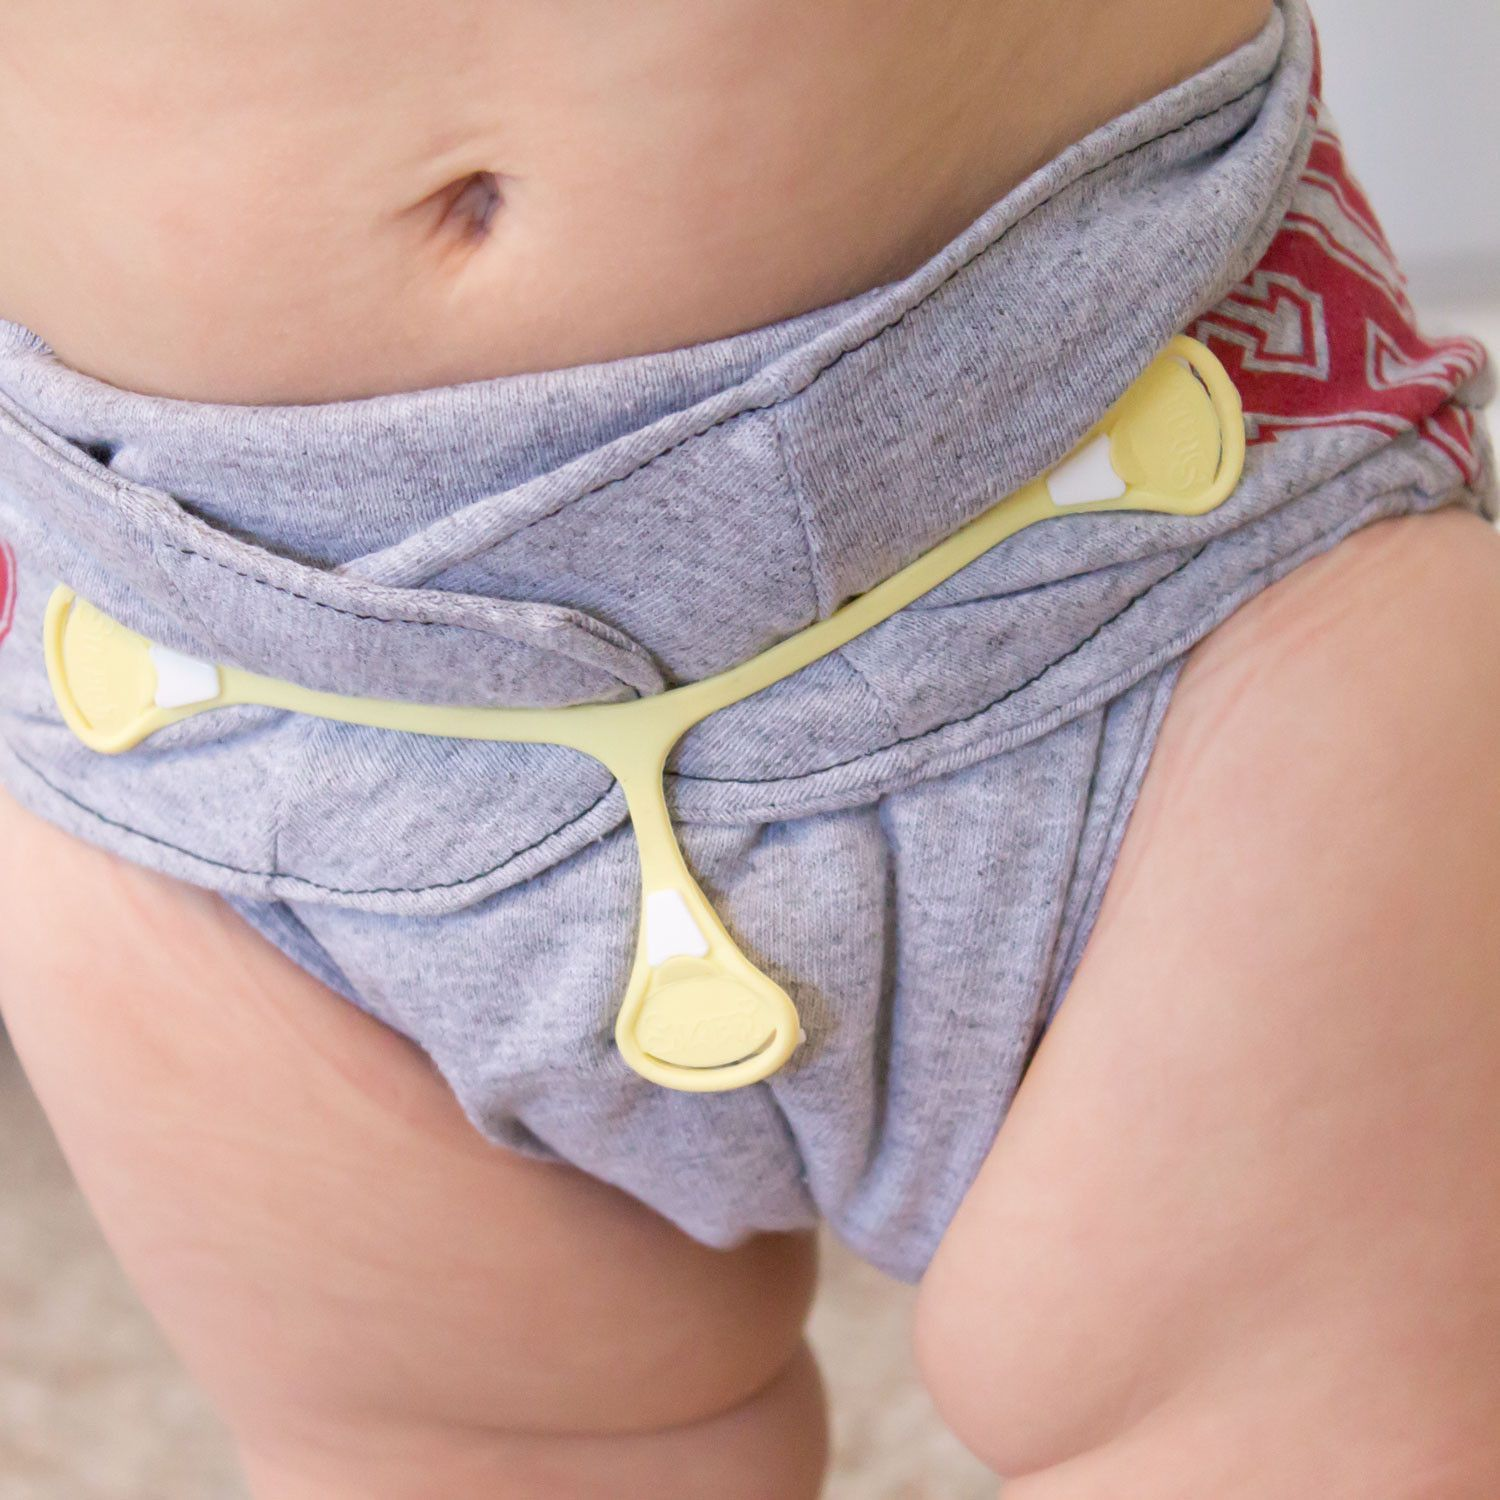 fitted diaper pattern